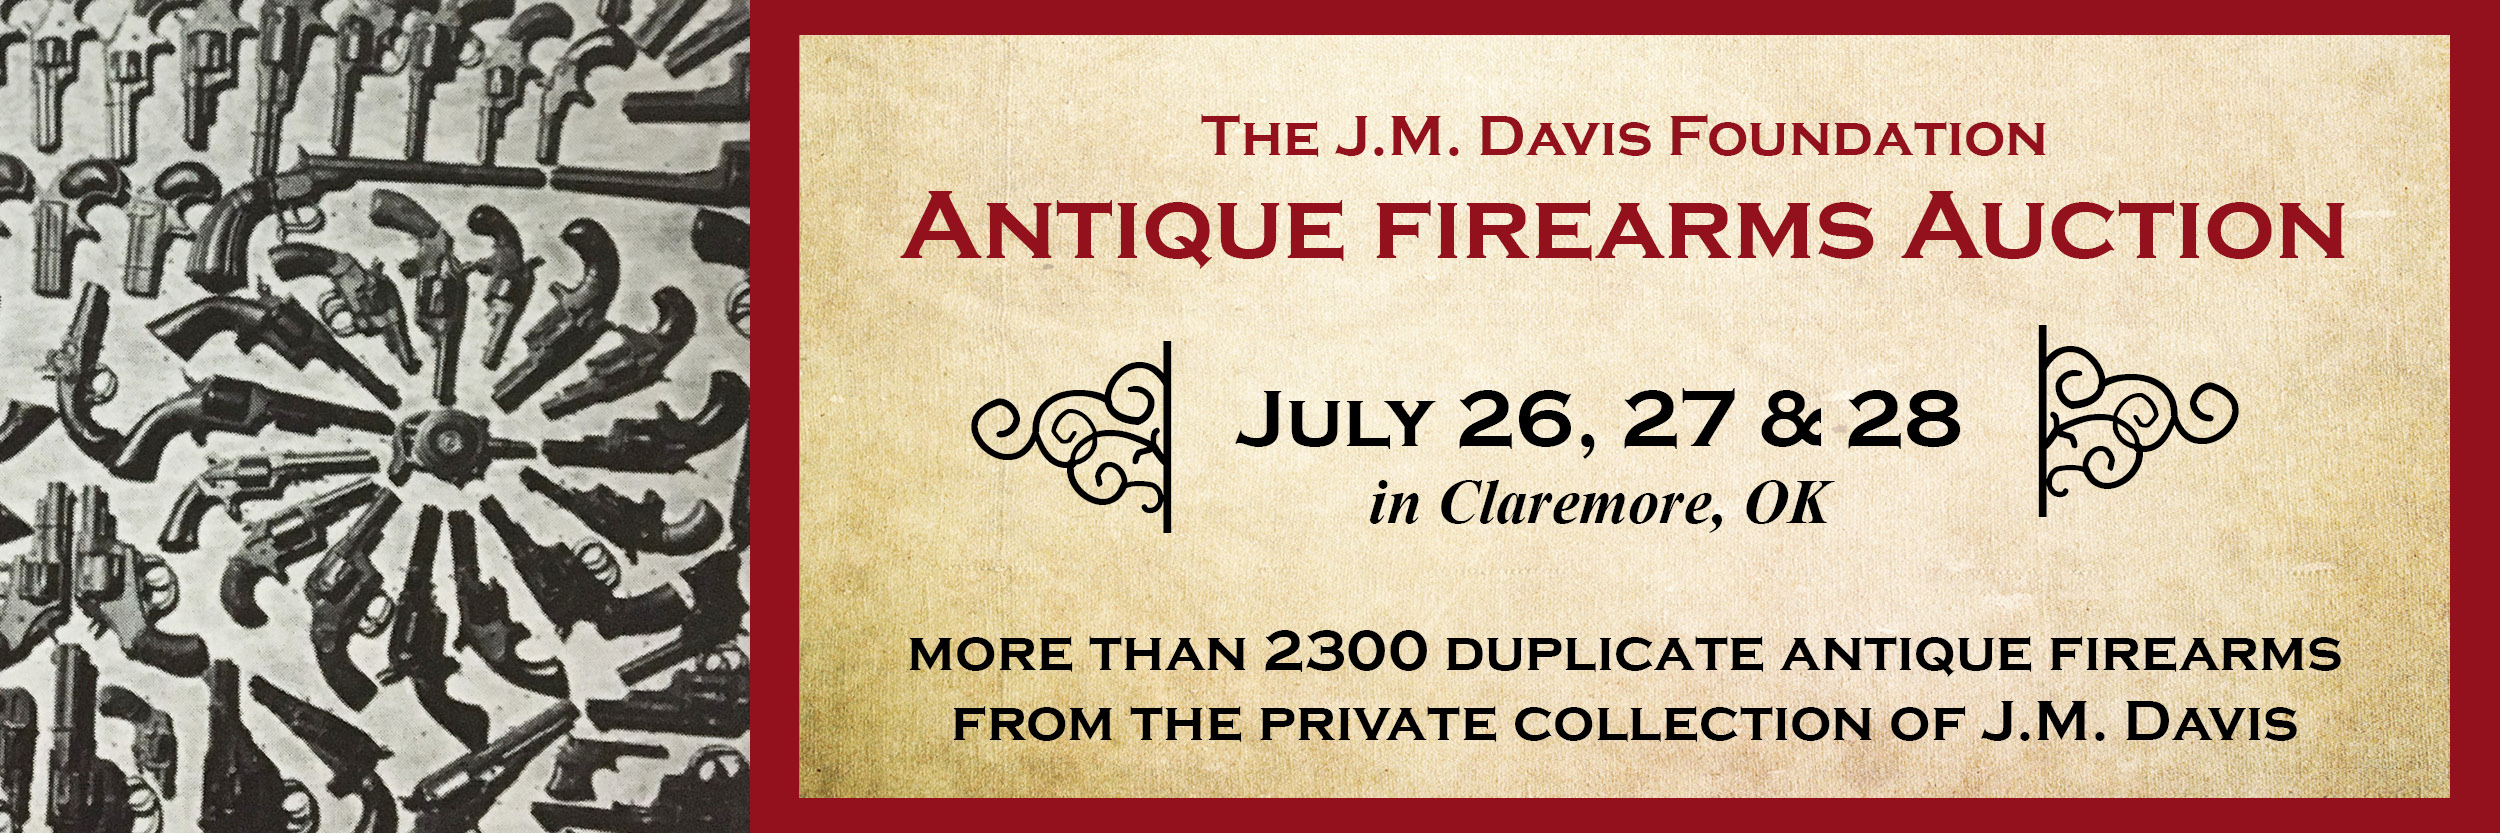 Auction Banner Gun Sale July 2019 Confirmed13